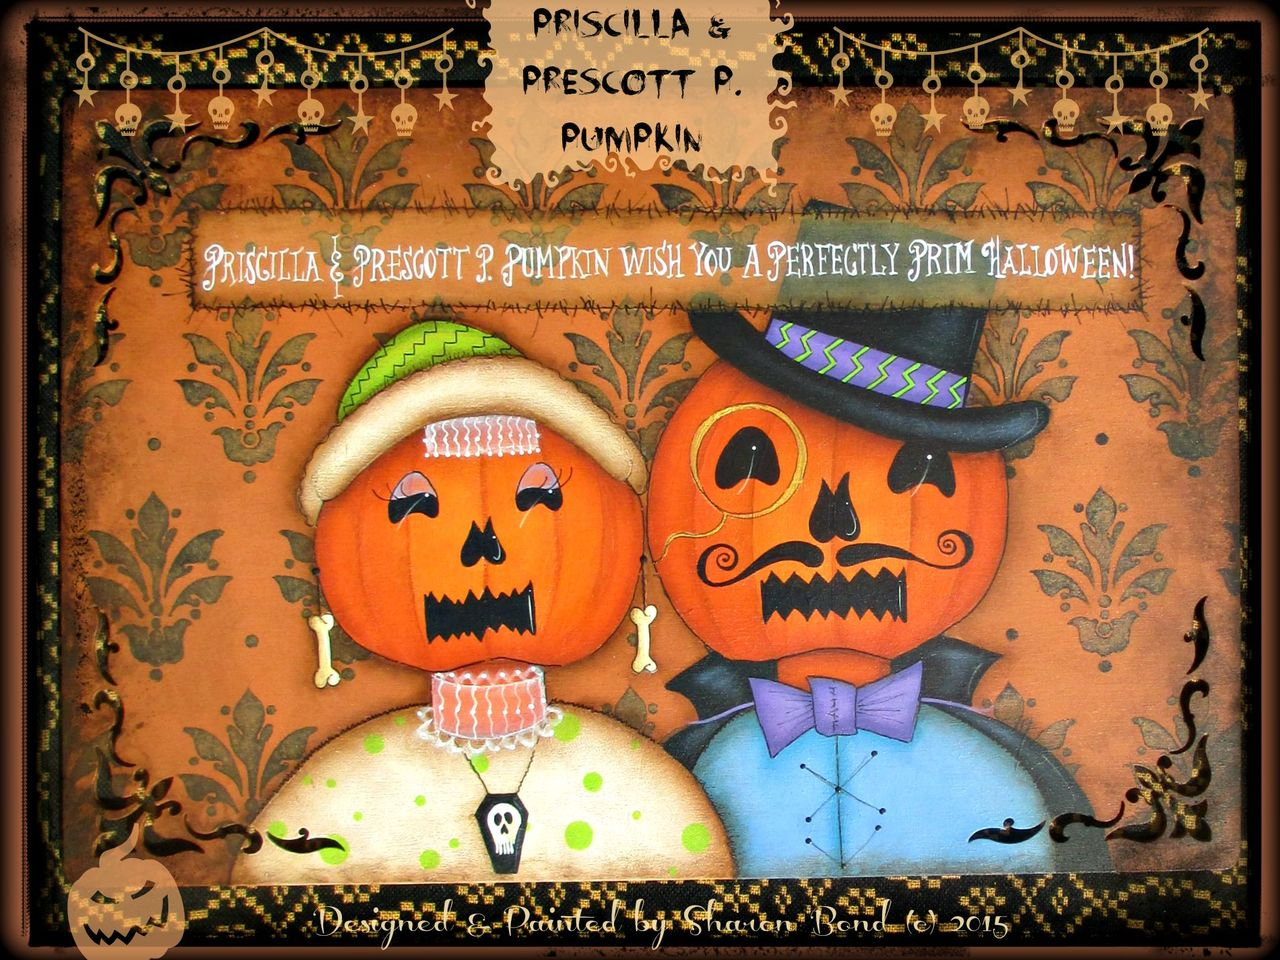 Priscilla & Prescott Pumpkin - E-Packet - Sharon Bond